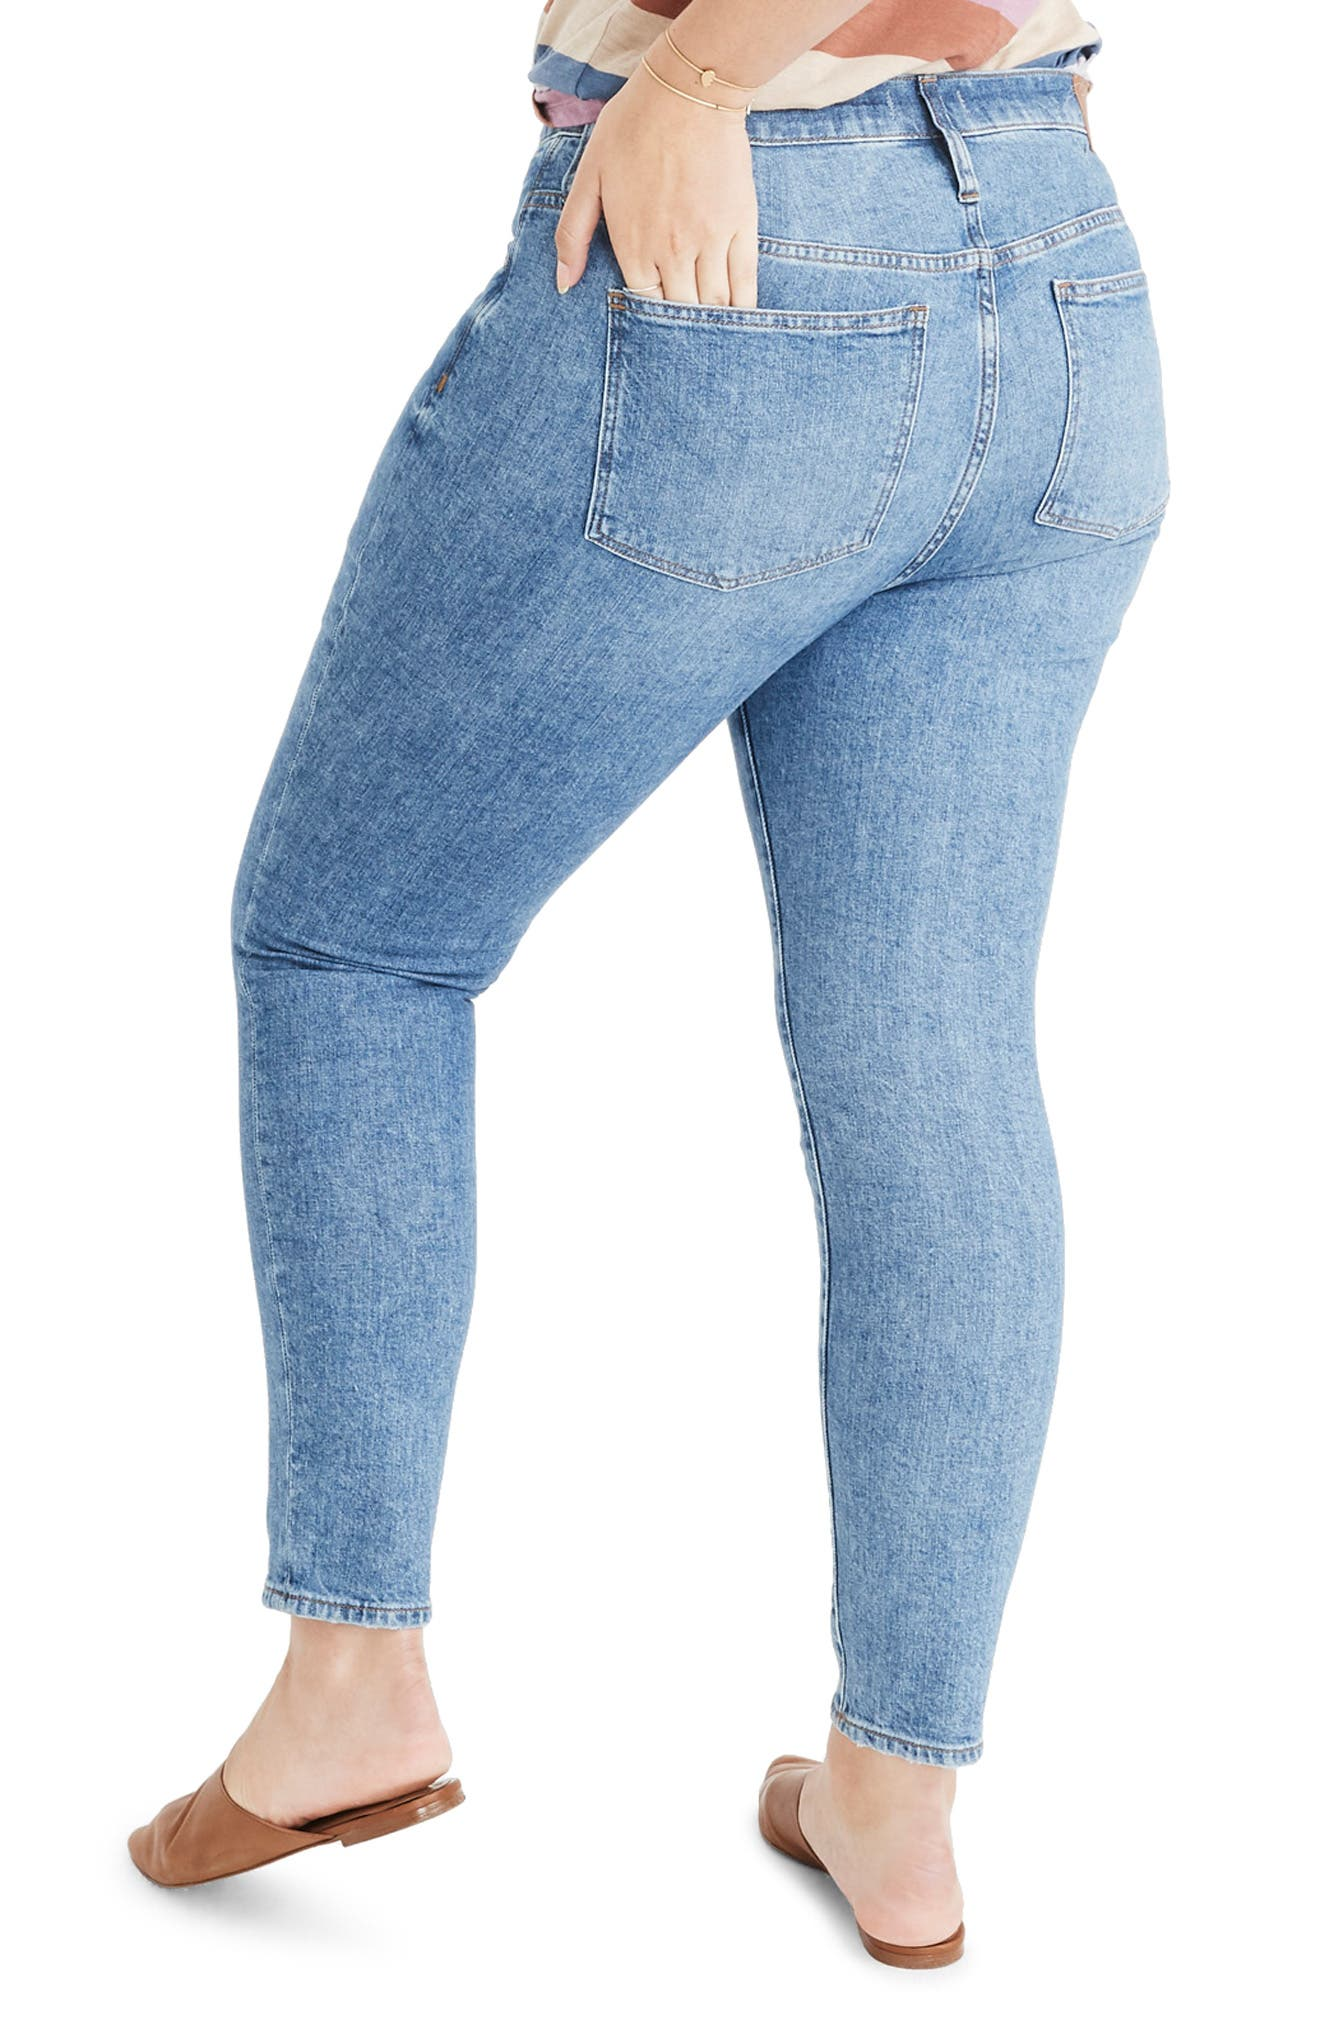 9-Inch High Waist Stretch Skinny Jeans,                             Alternate thumbnail 7, color,                             REGINA